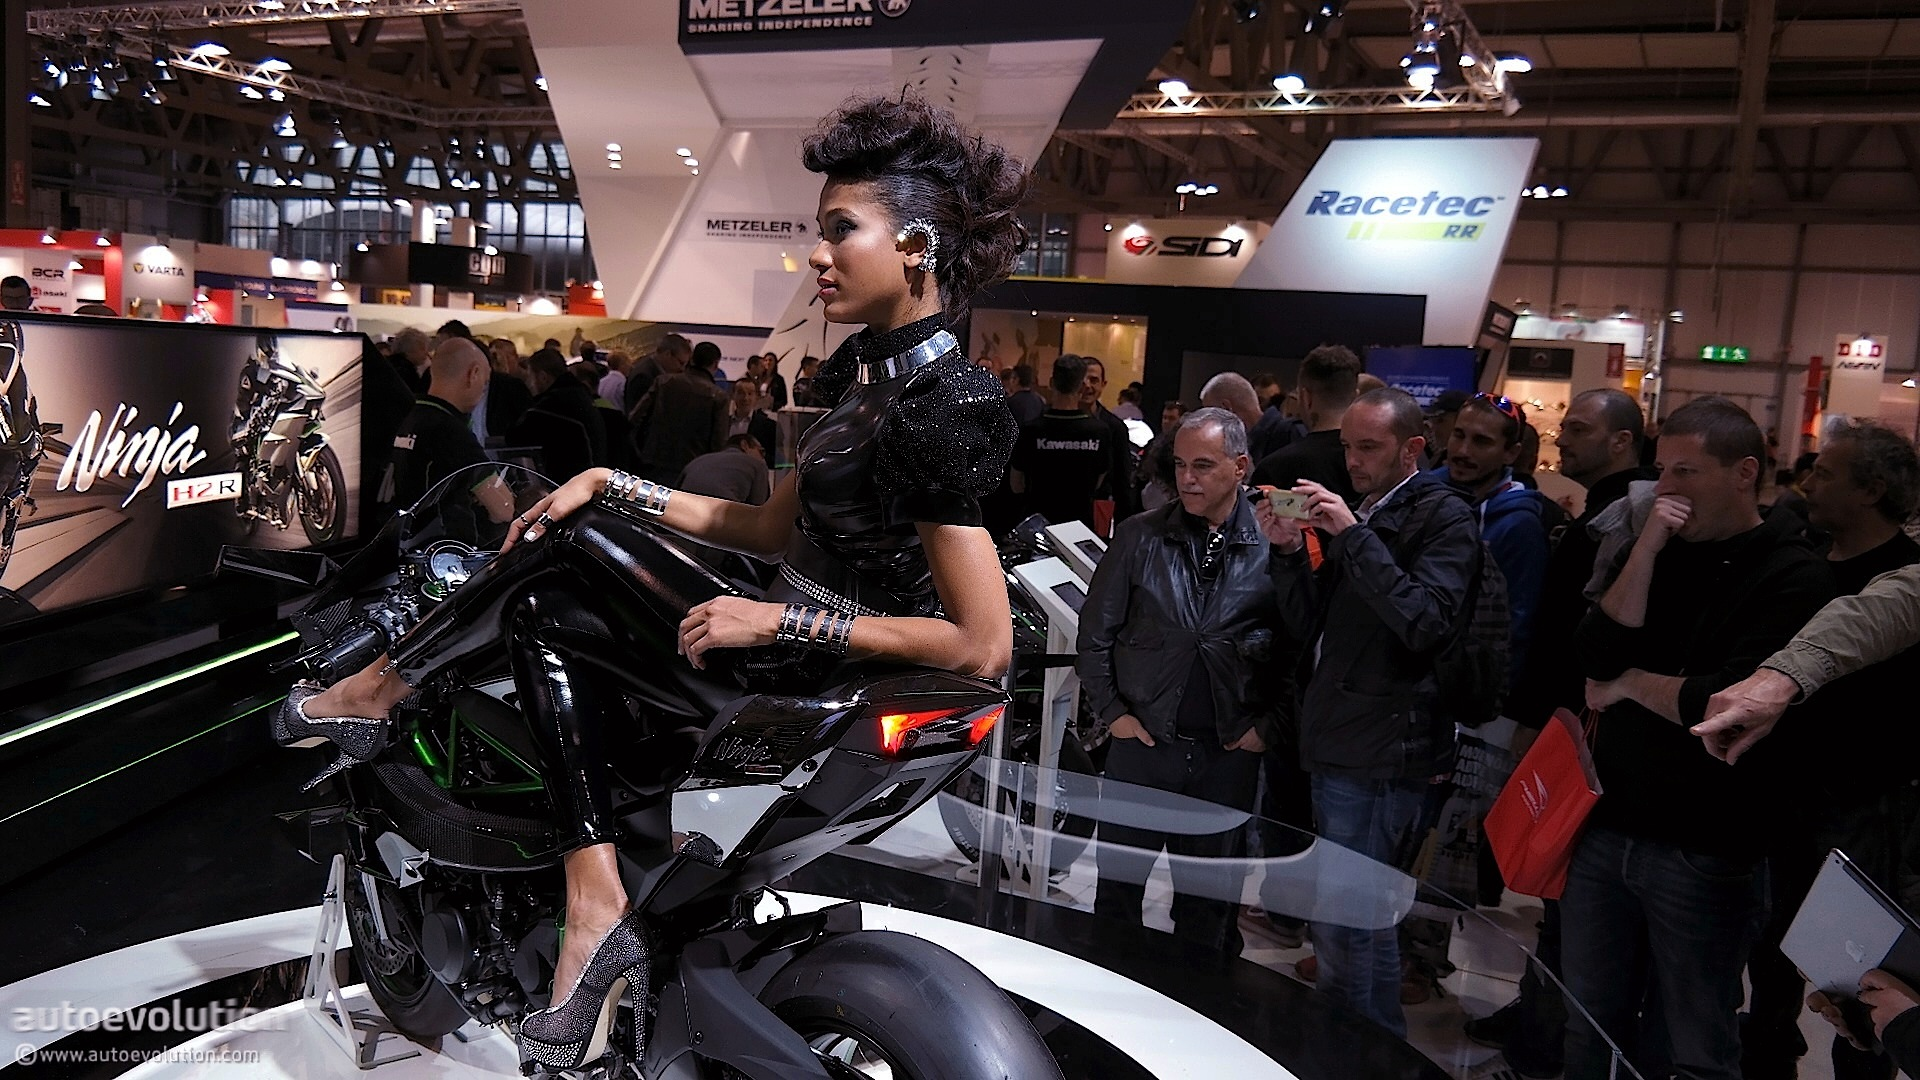 Hot Girls Of The 2014 Eicma Milan Bike Show Live Photos